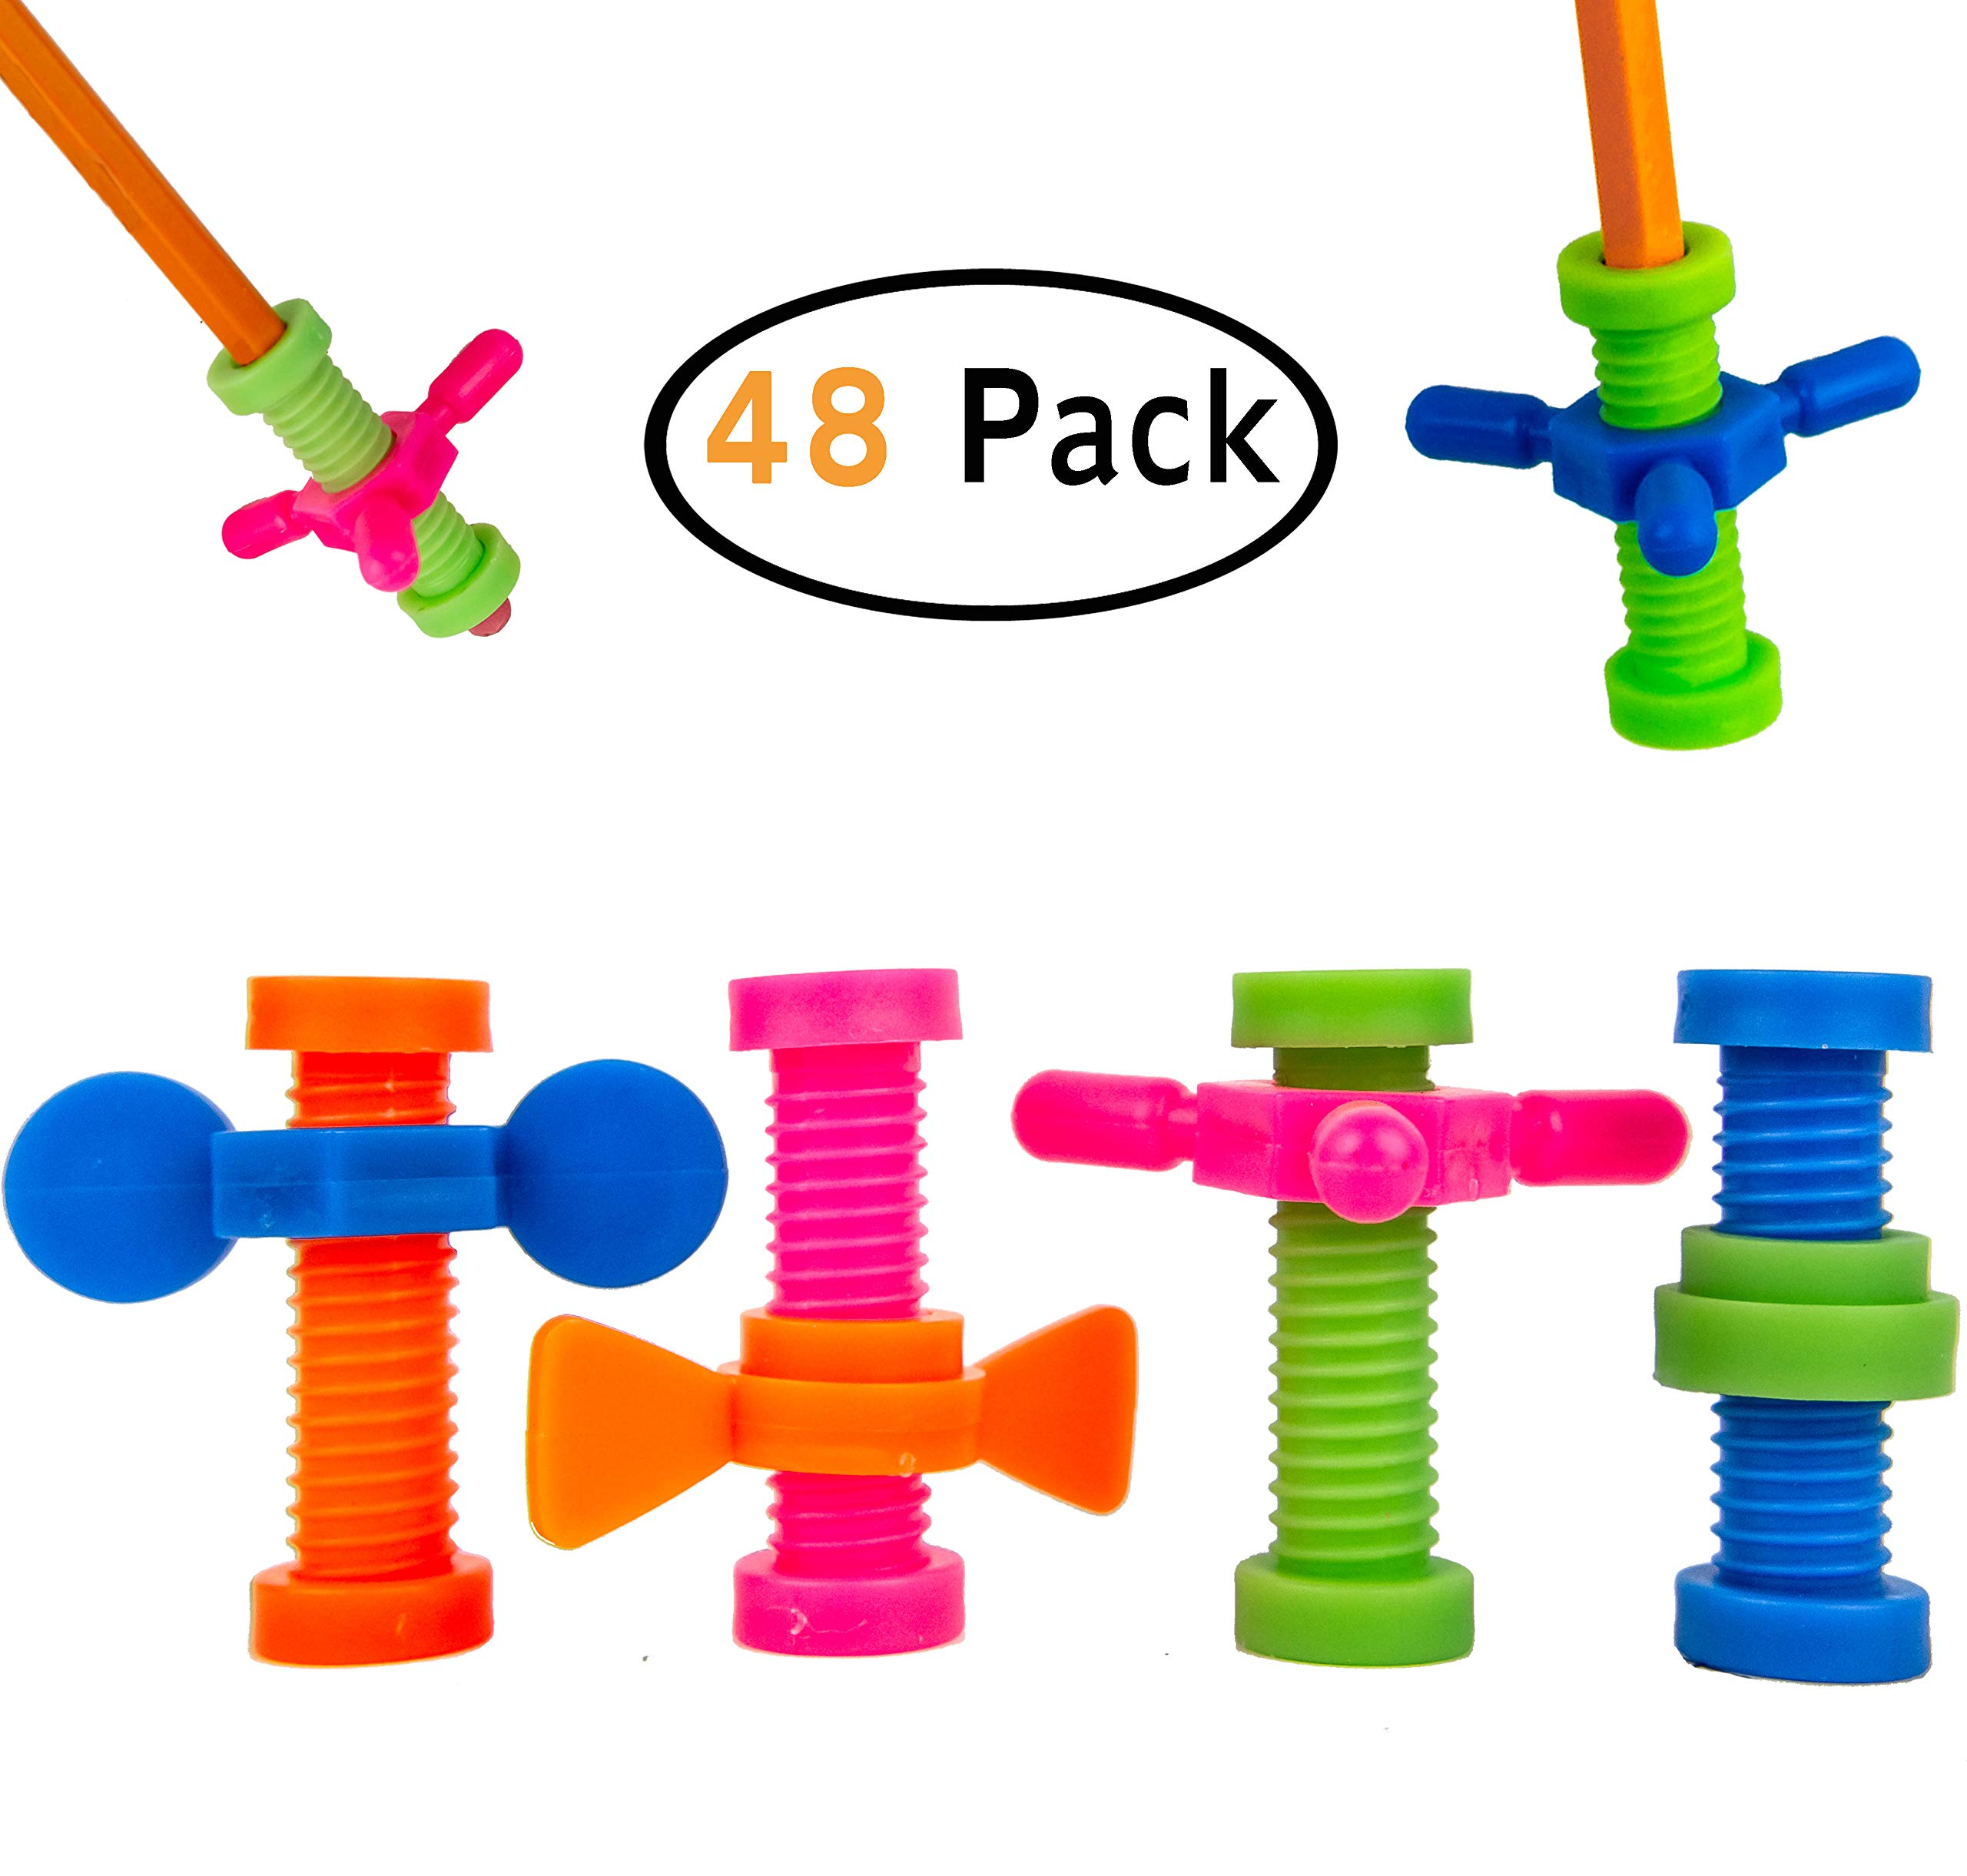 B-KIDS Pencil Fidget Toy Spinner Bulk (48 Pack) by B-KIDS